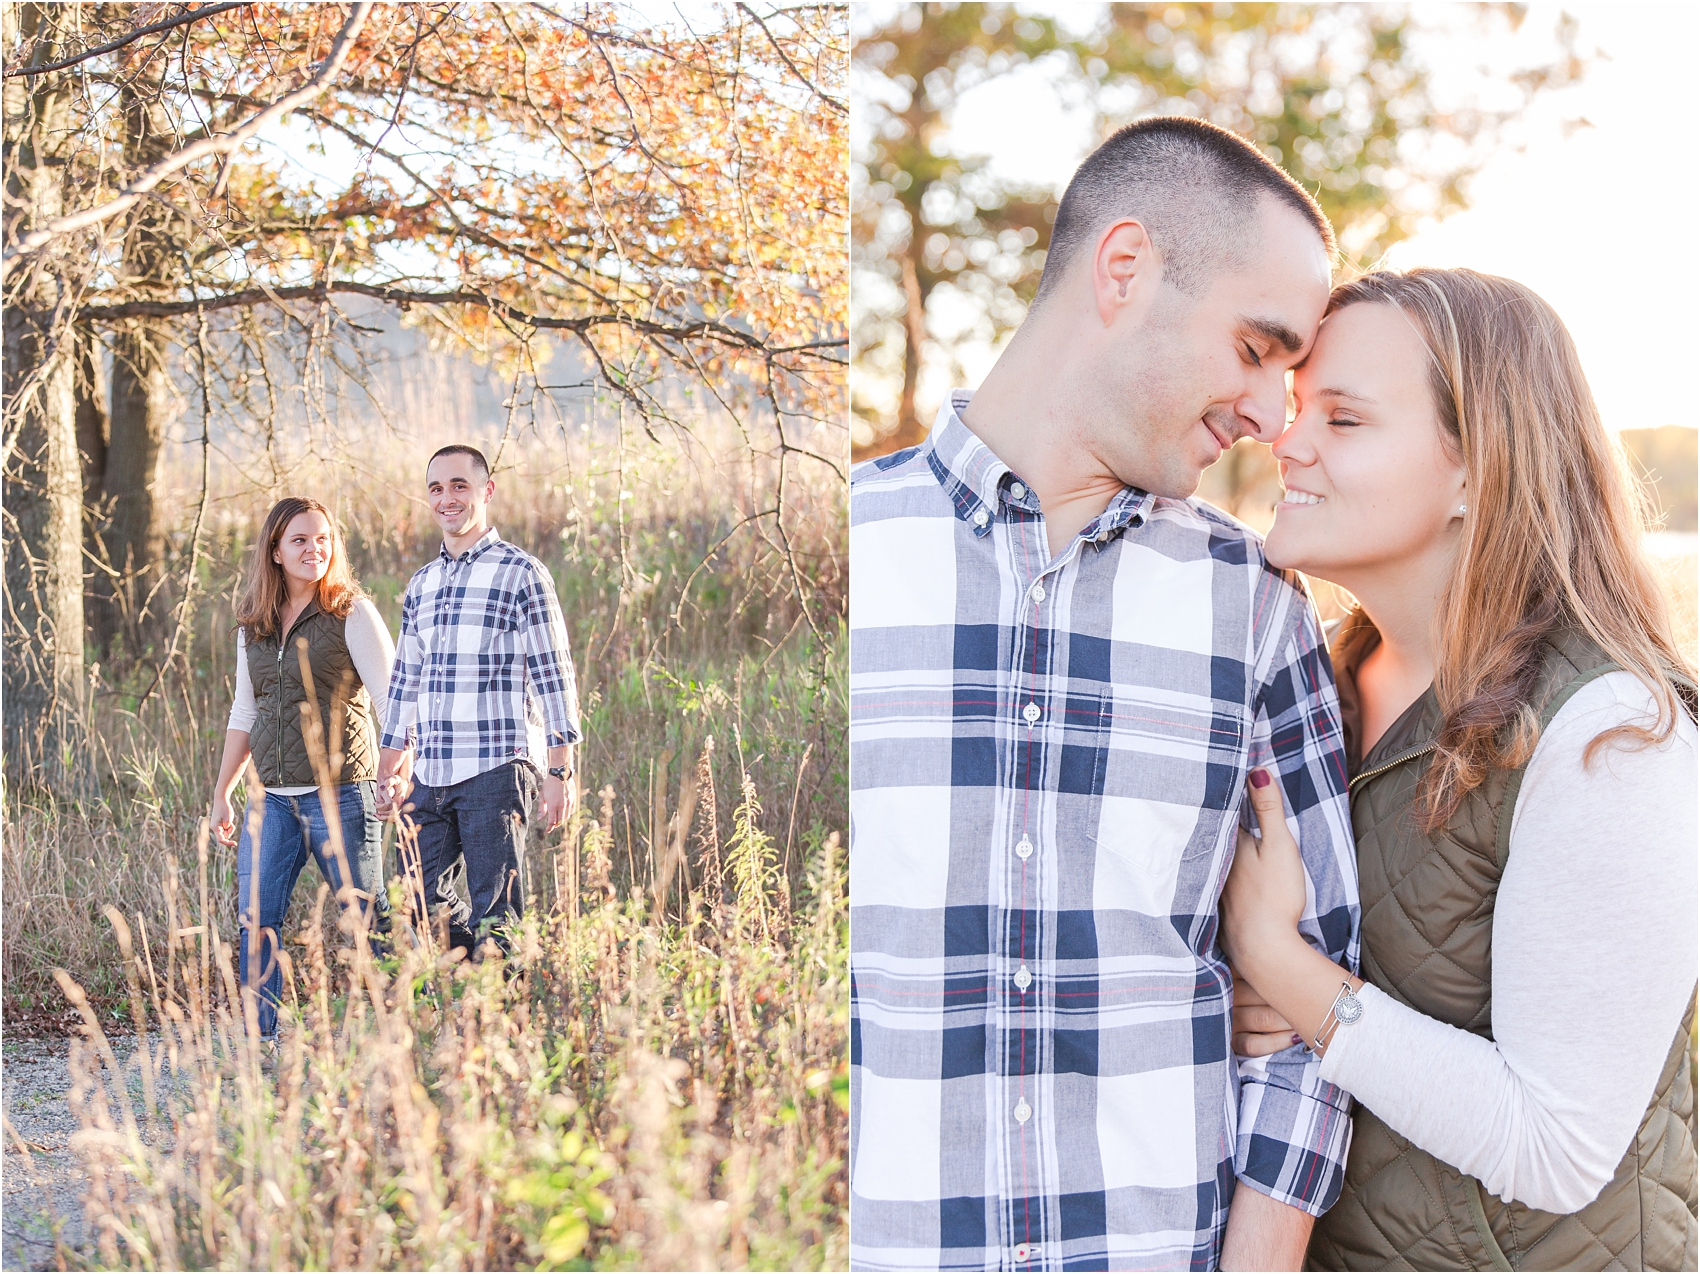 romantic-fall-engagement-photos-at-indian-springs-metropark-in-clarkston-mi-by-courtney-carolyn-photography_0002.jpg